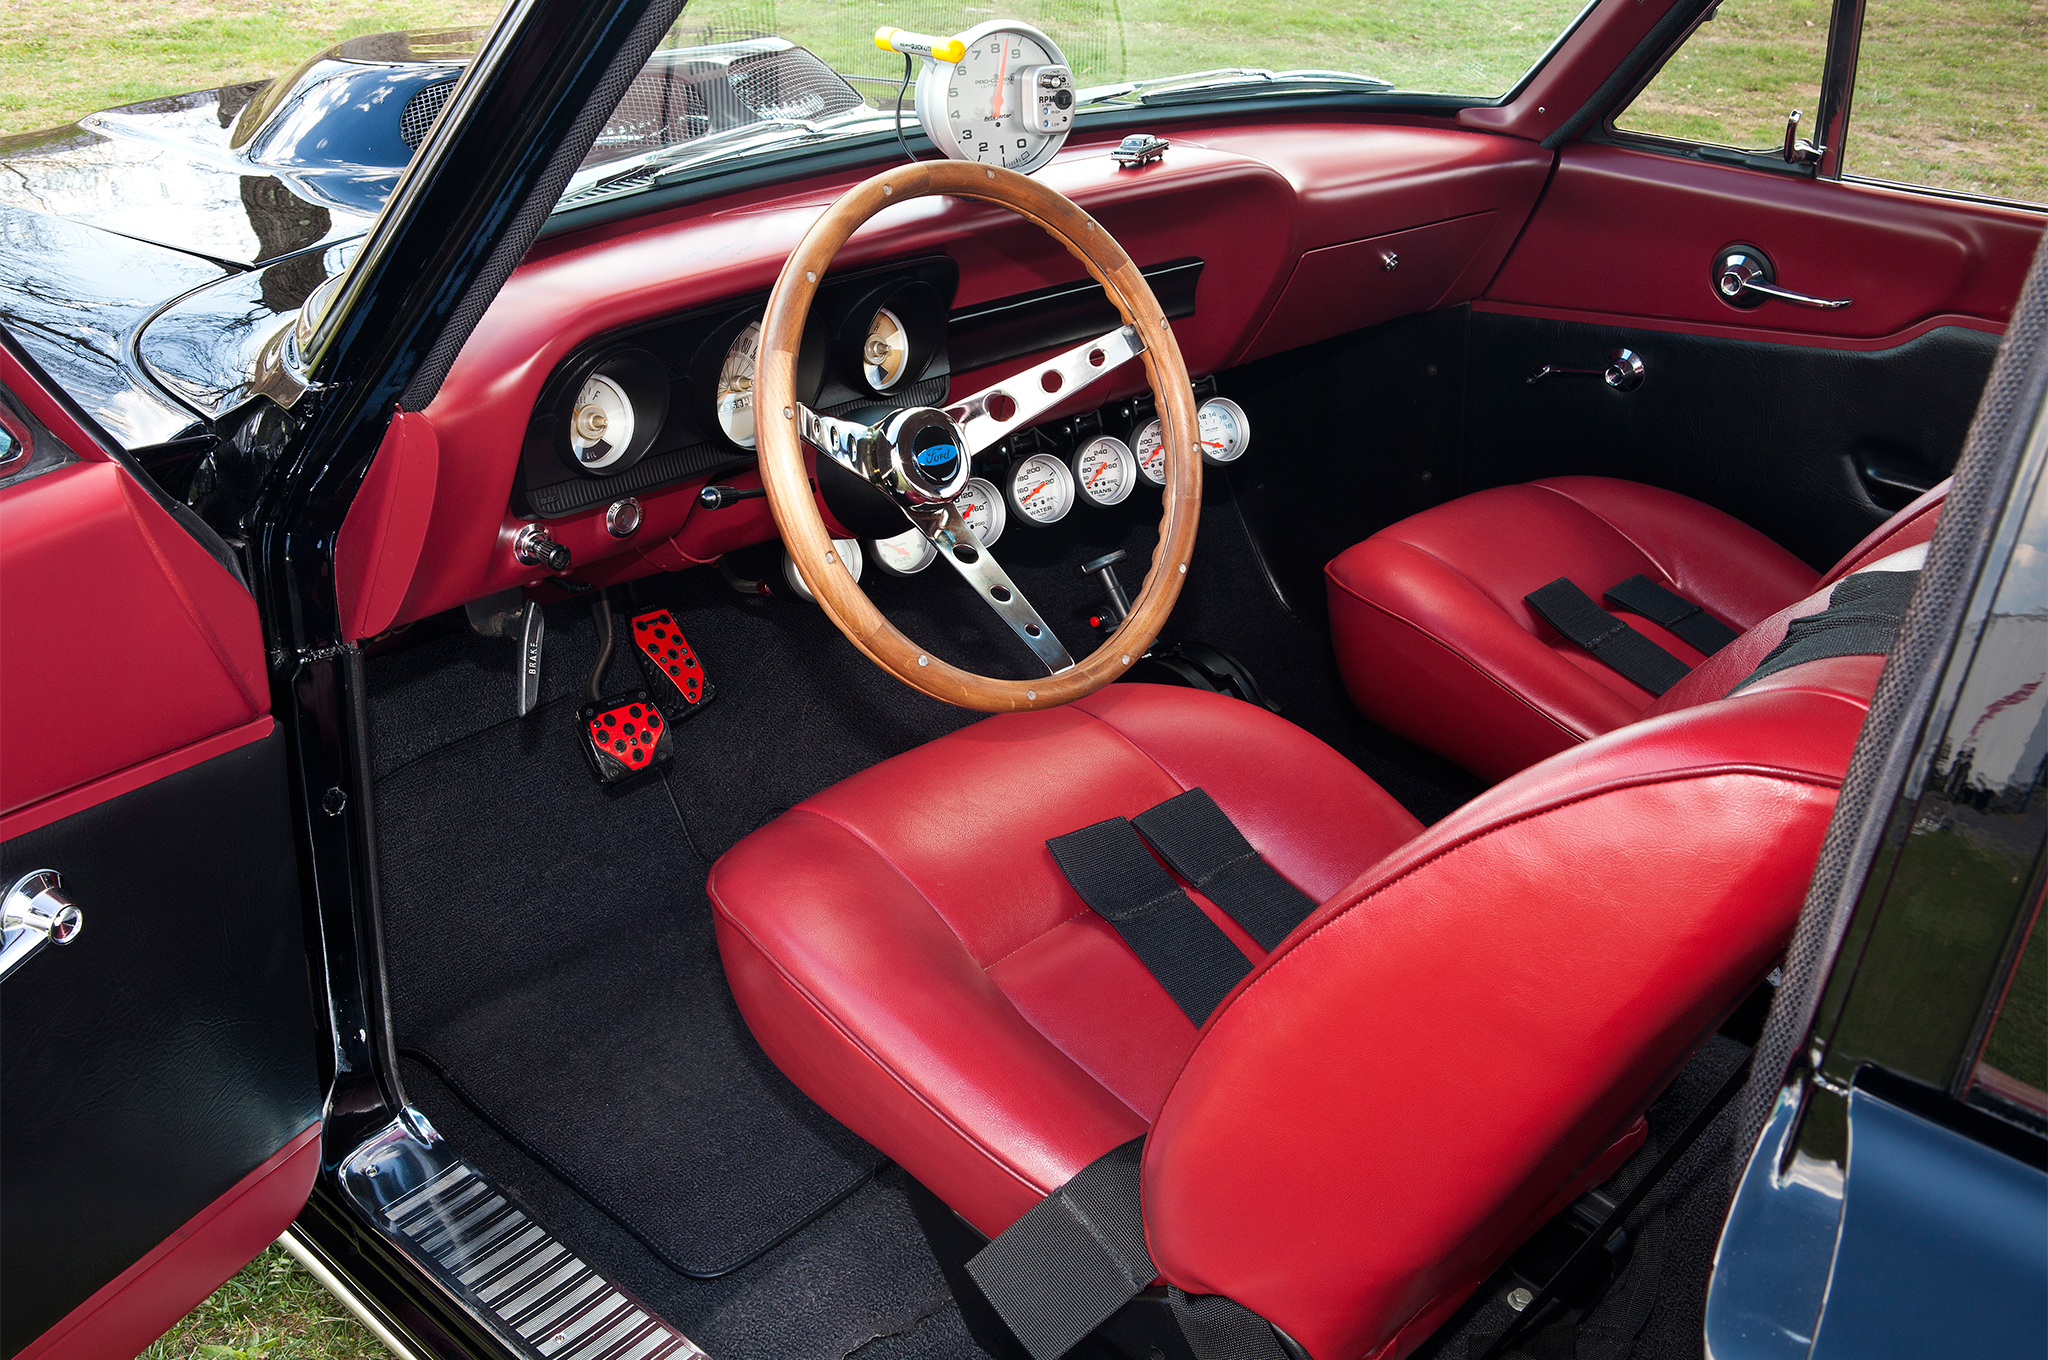 While the exterior says T-bolt, the interior is comfortable street car. Jim's original intention was only to be a radical cruiser, so he went with bucket seats rather than the Spartan Econoline ones found in a Thunderbolt.